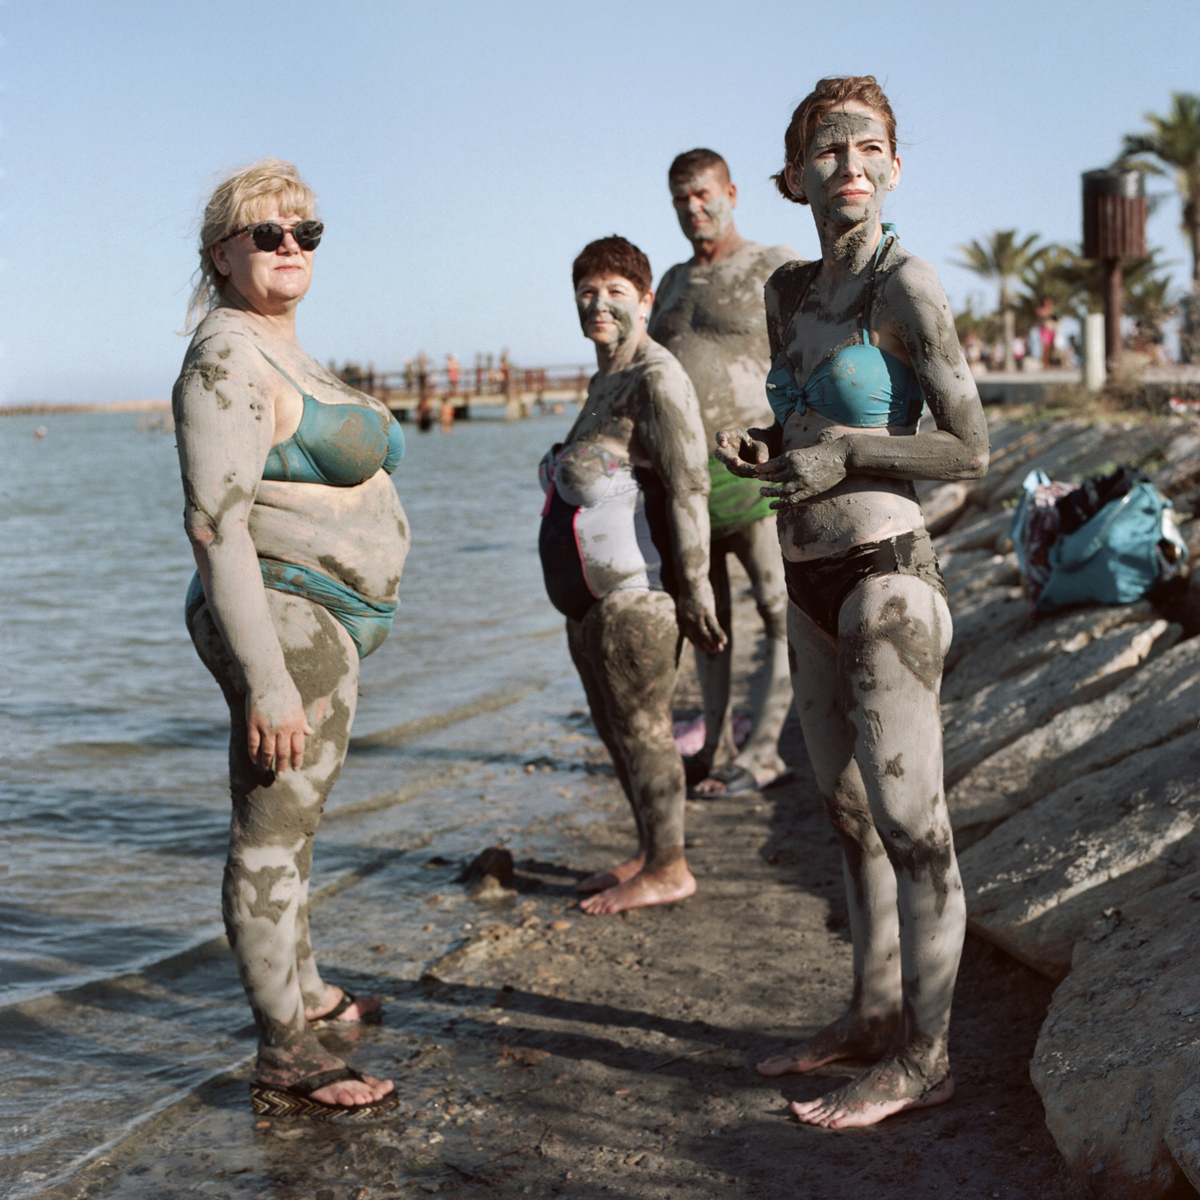 """Images from the project """"Places close to my heart"""". Summer rituals in Lo Pagán"""